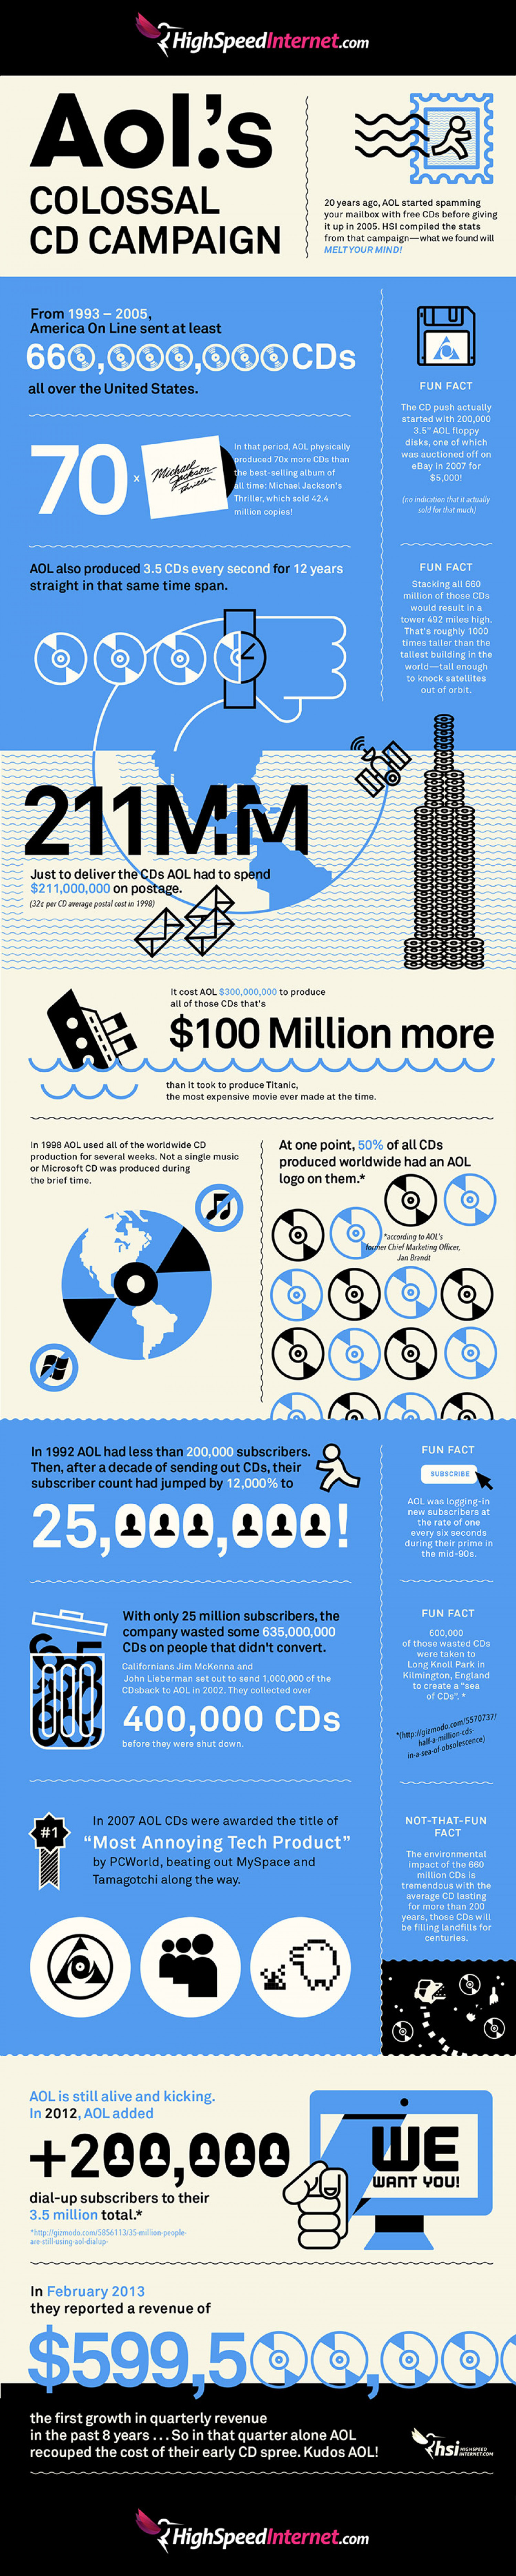 AOL's Colossal CD Campaign Infographic